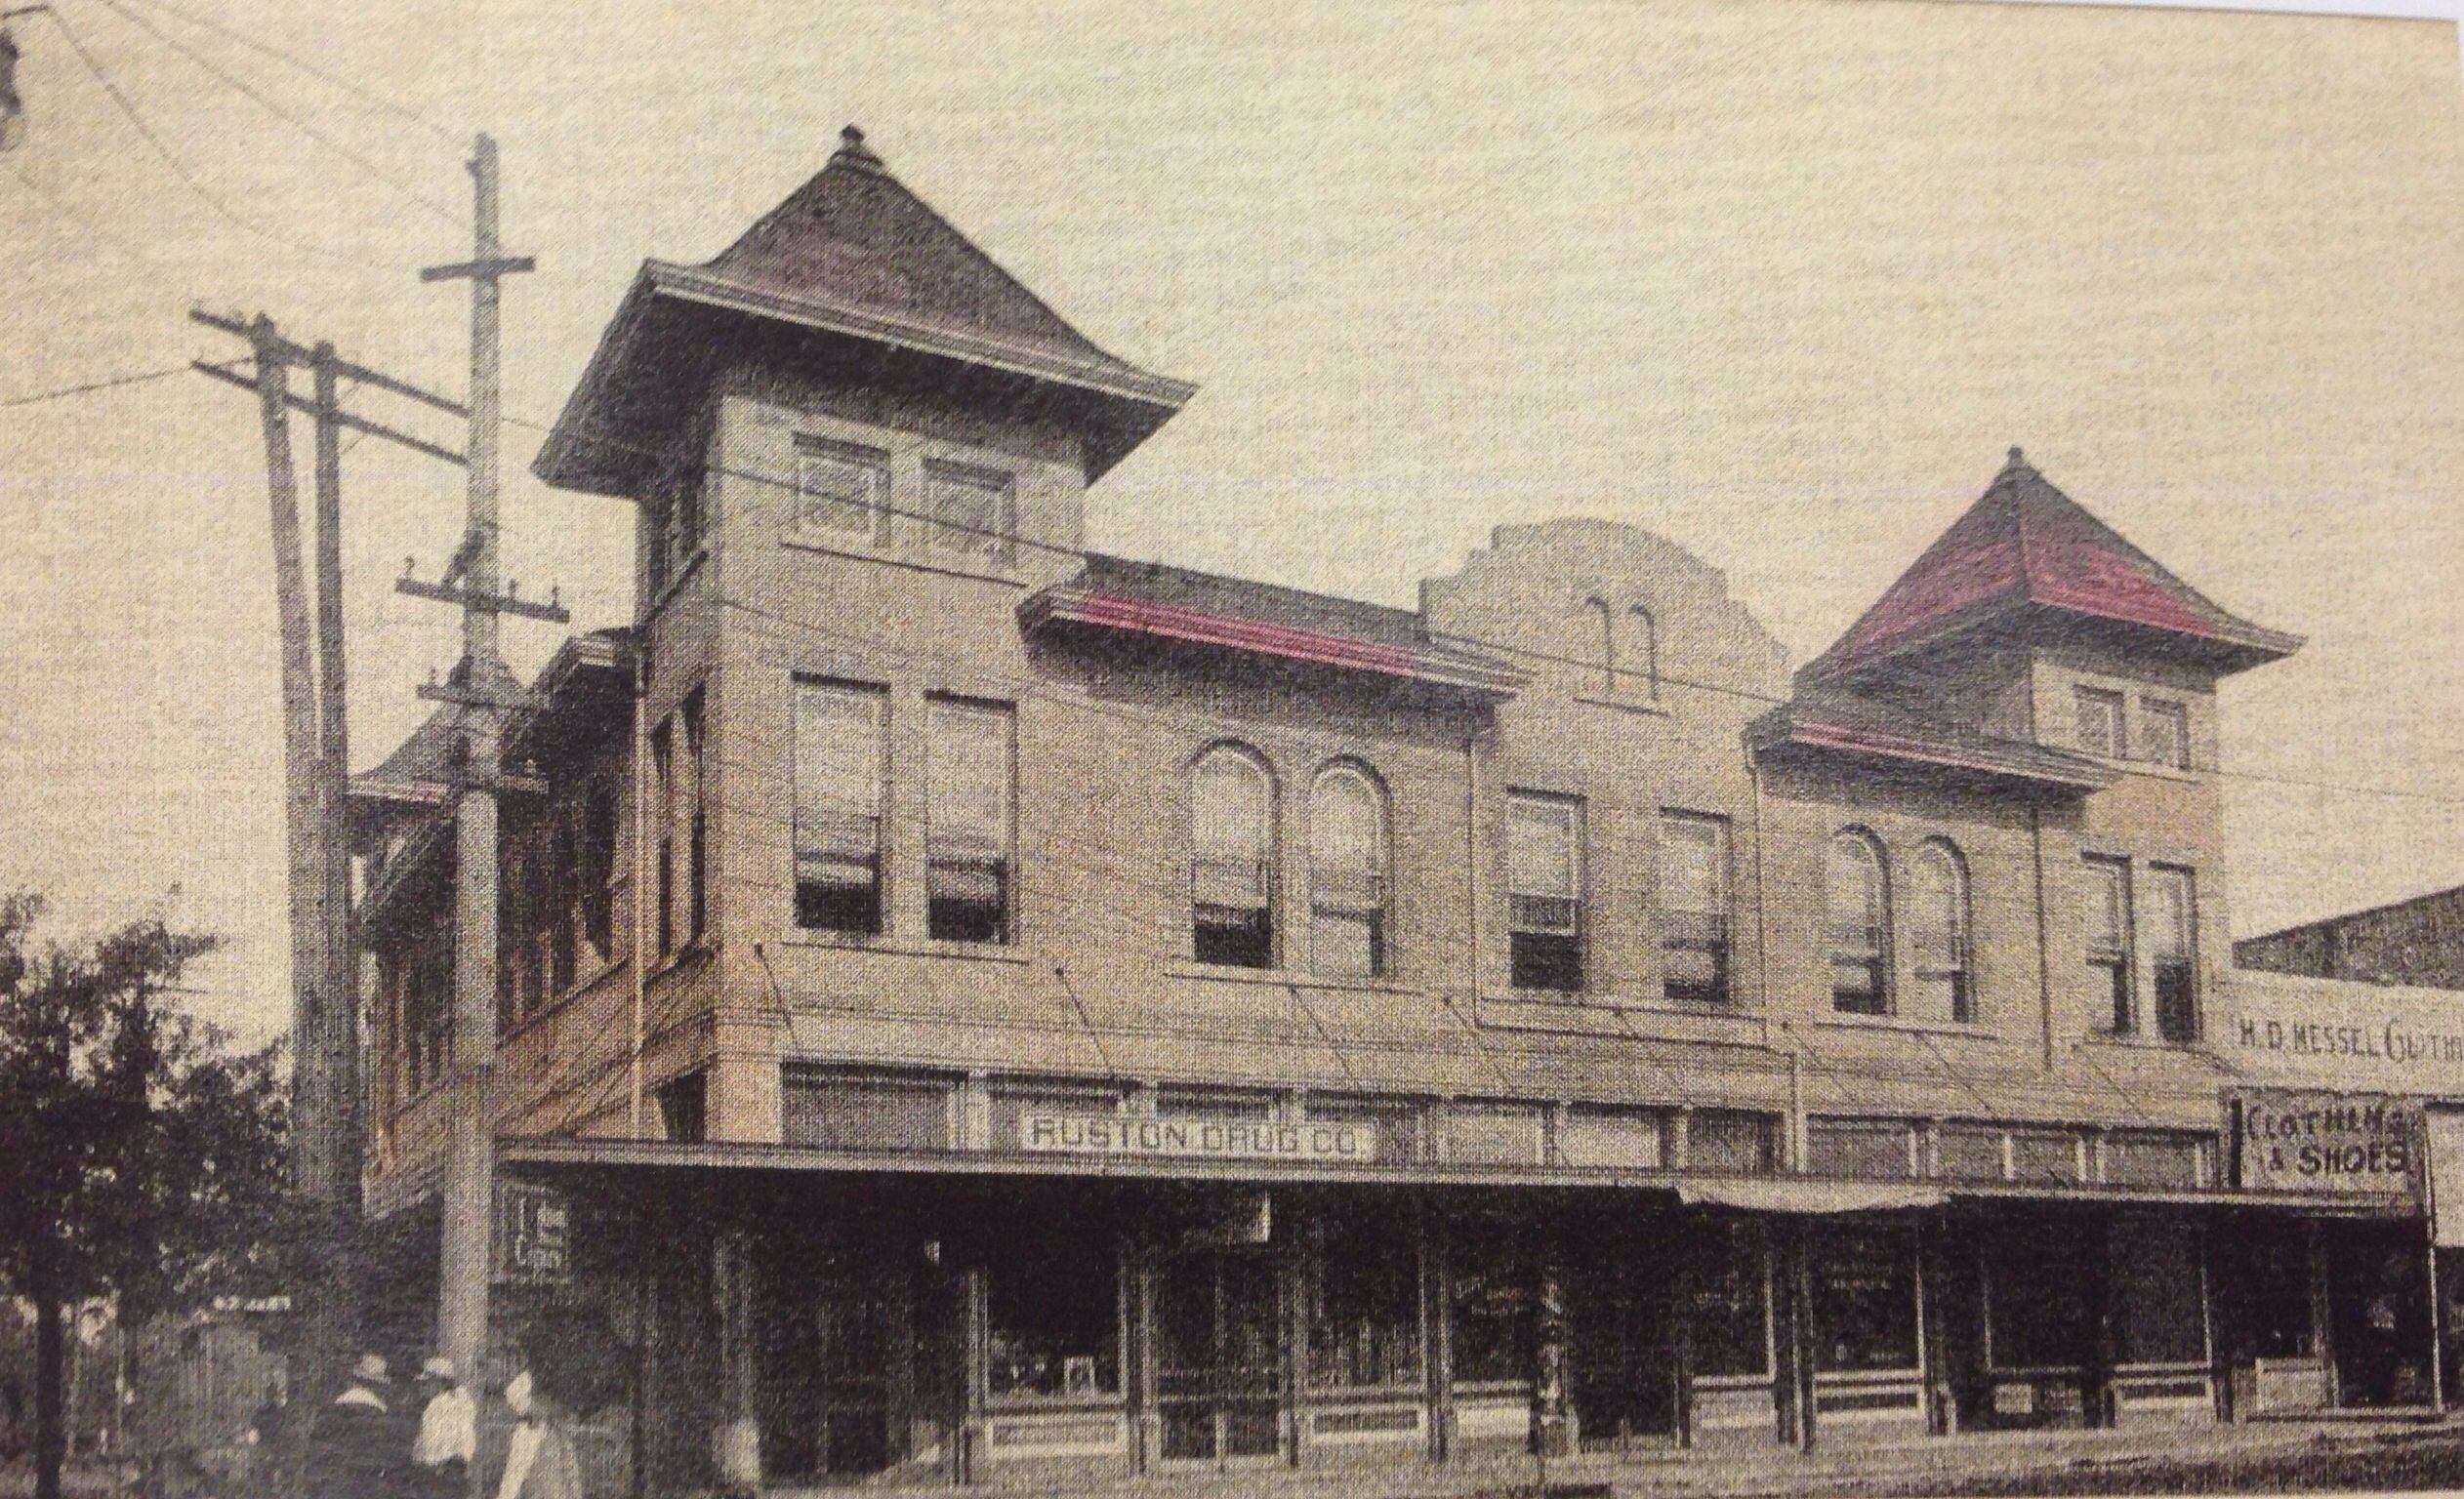 Ruston Company Below The Harris Hotel In 1911